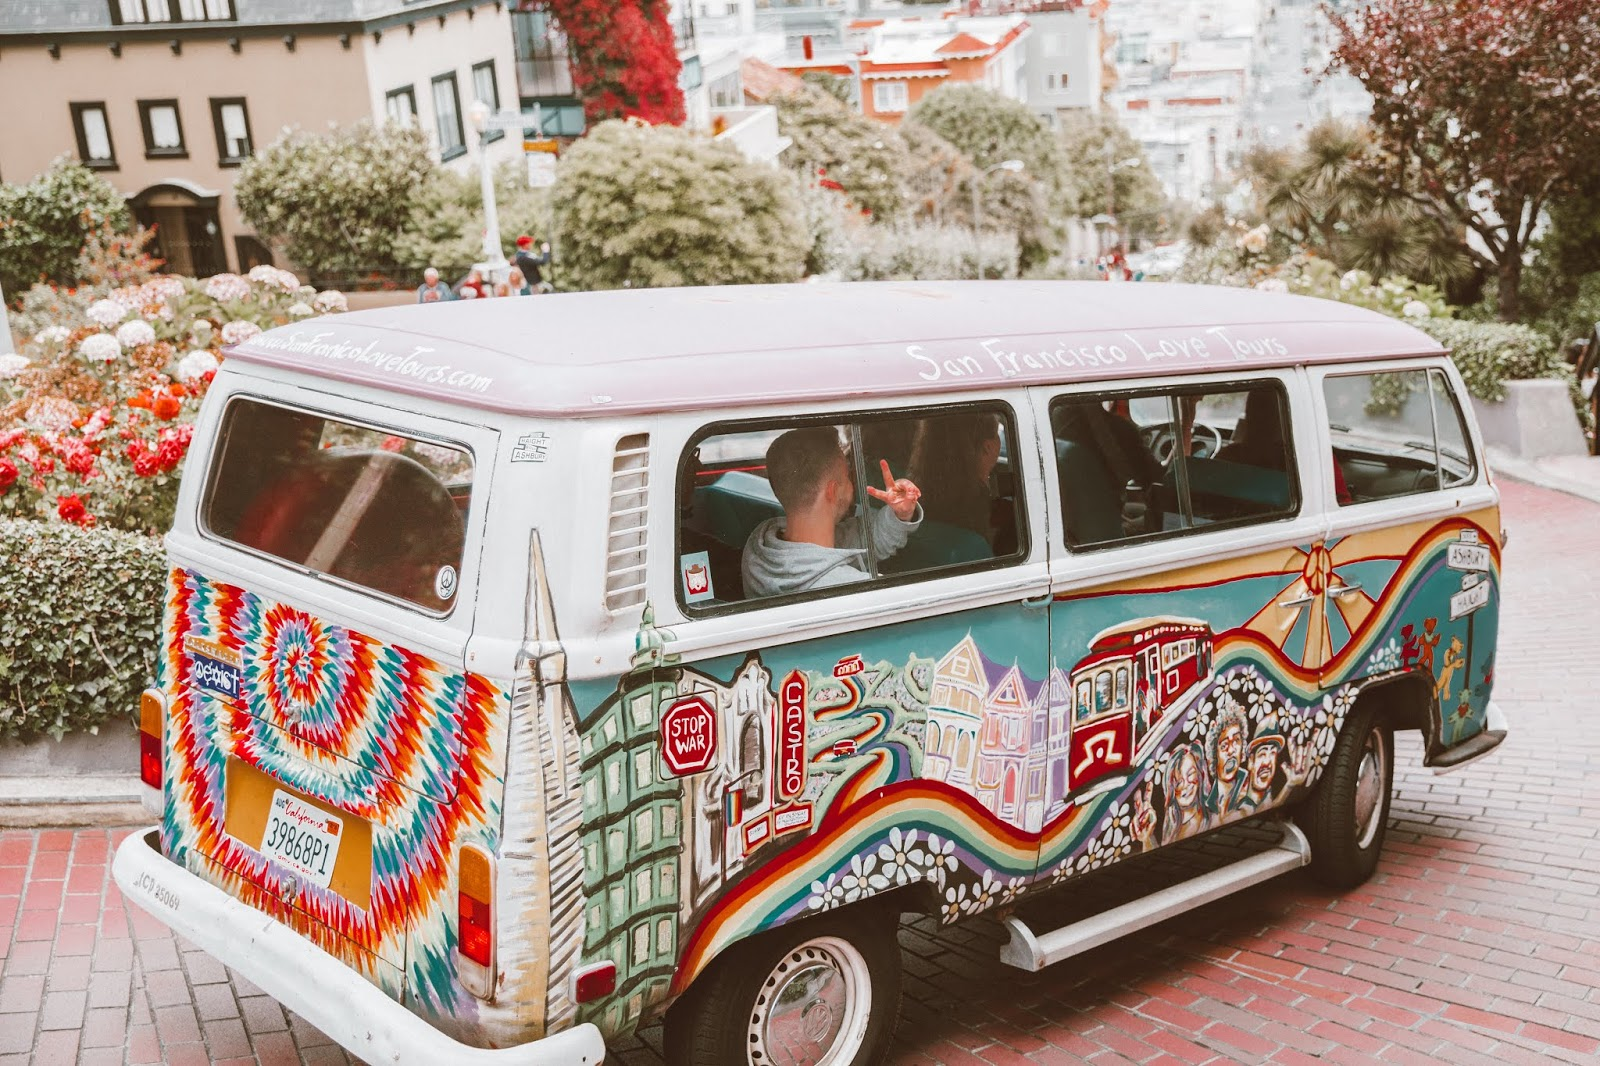 shelly stuckman, ArizonaGirl.com, San Francisco, travel blog, fashion blogger, Lombard Street, VW van, VW bus